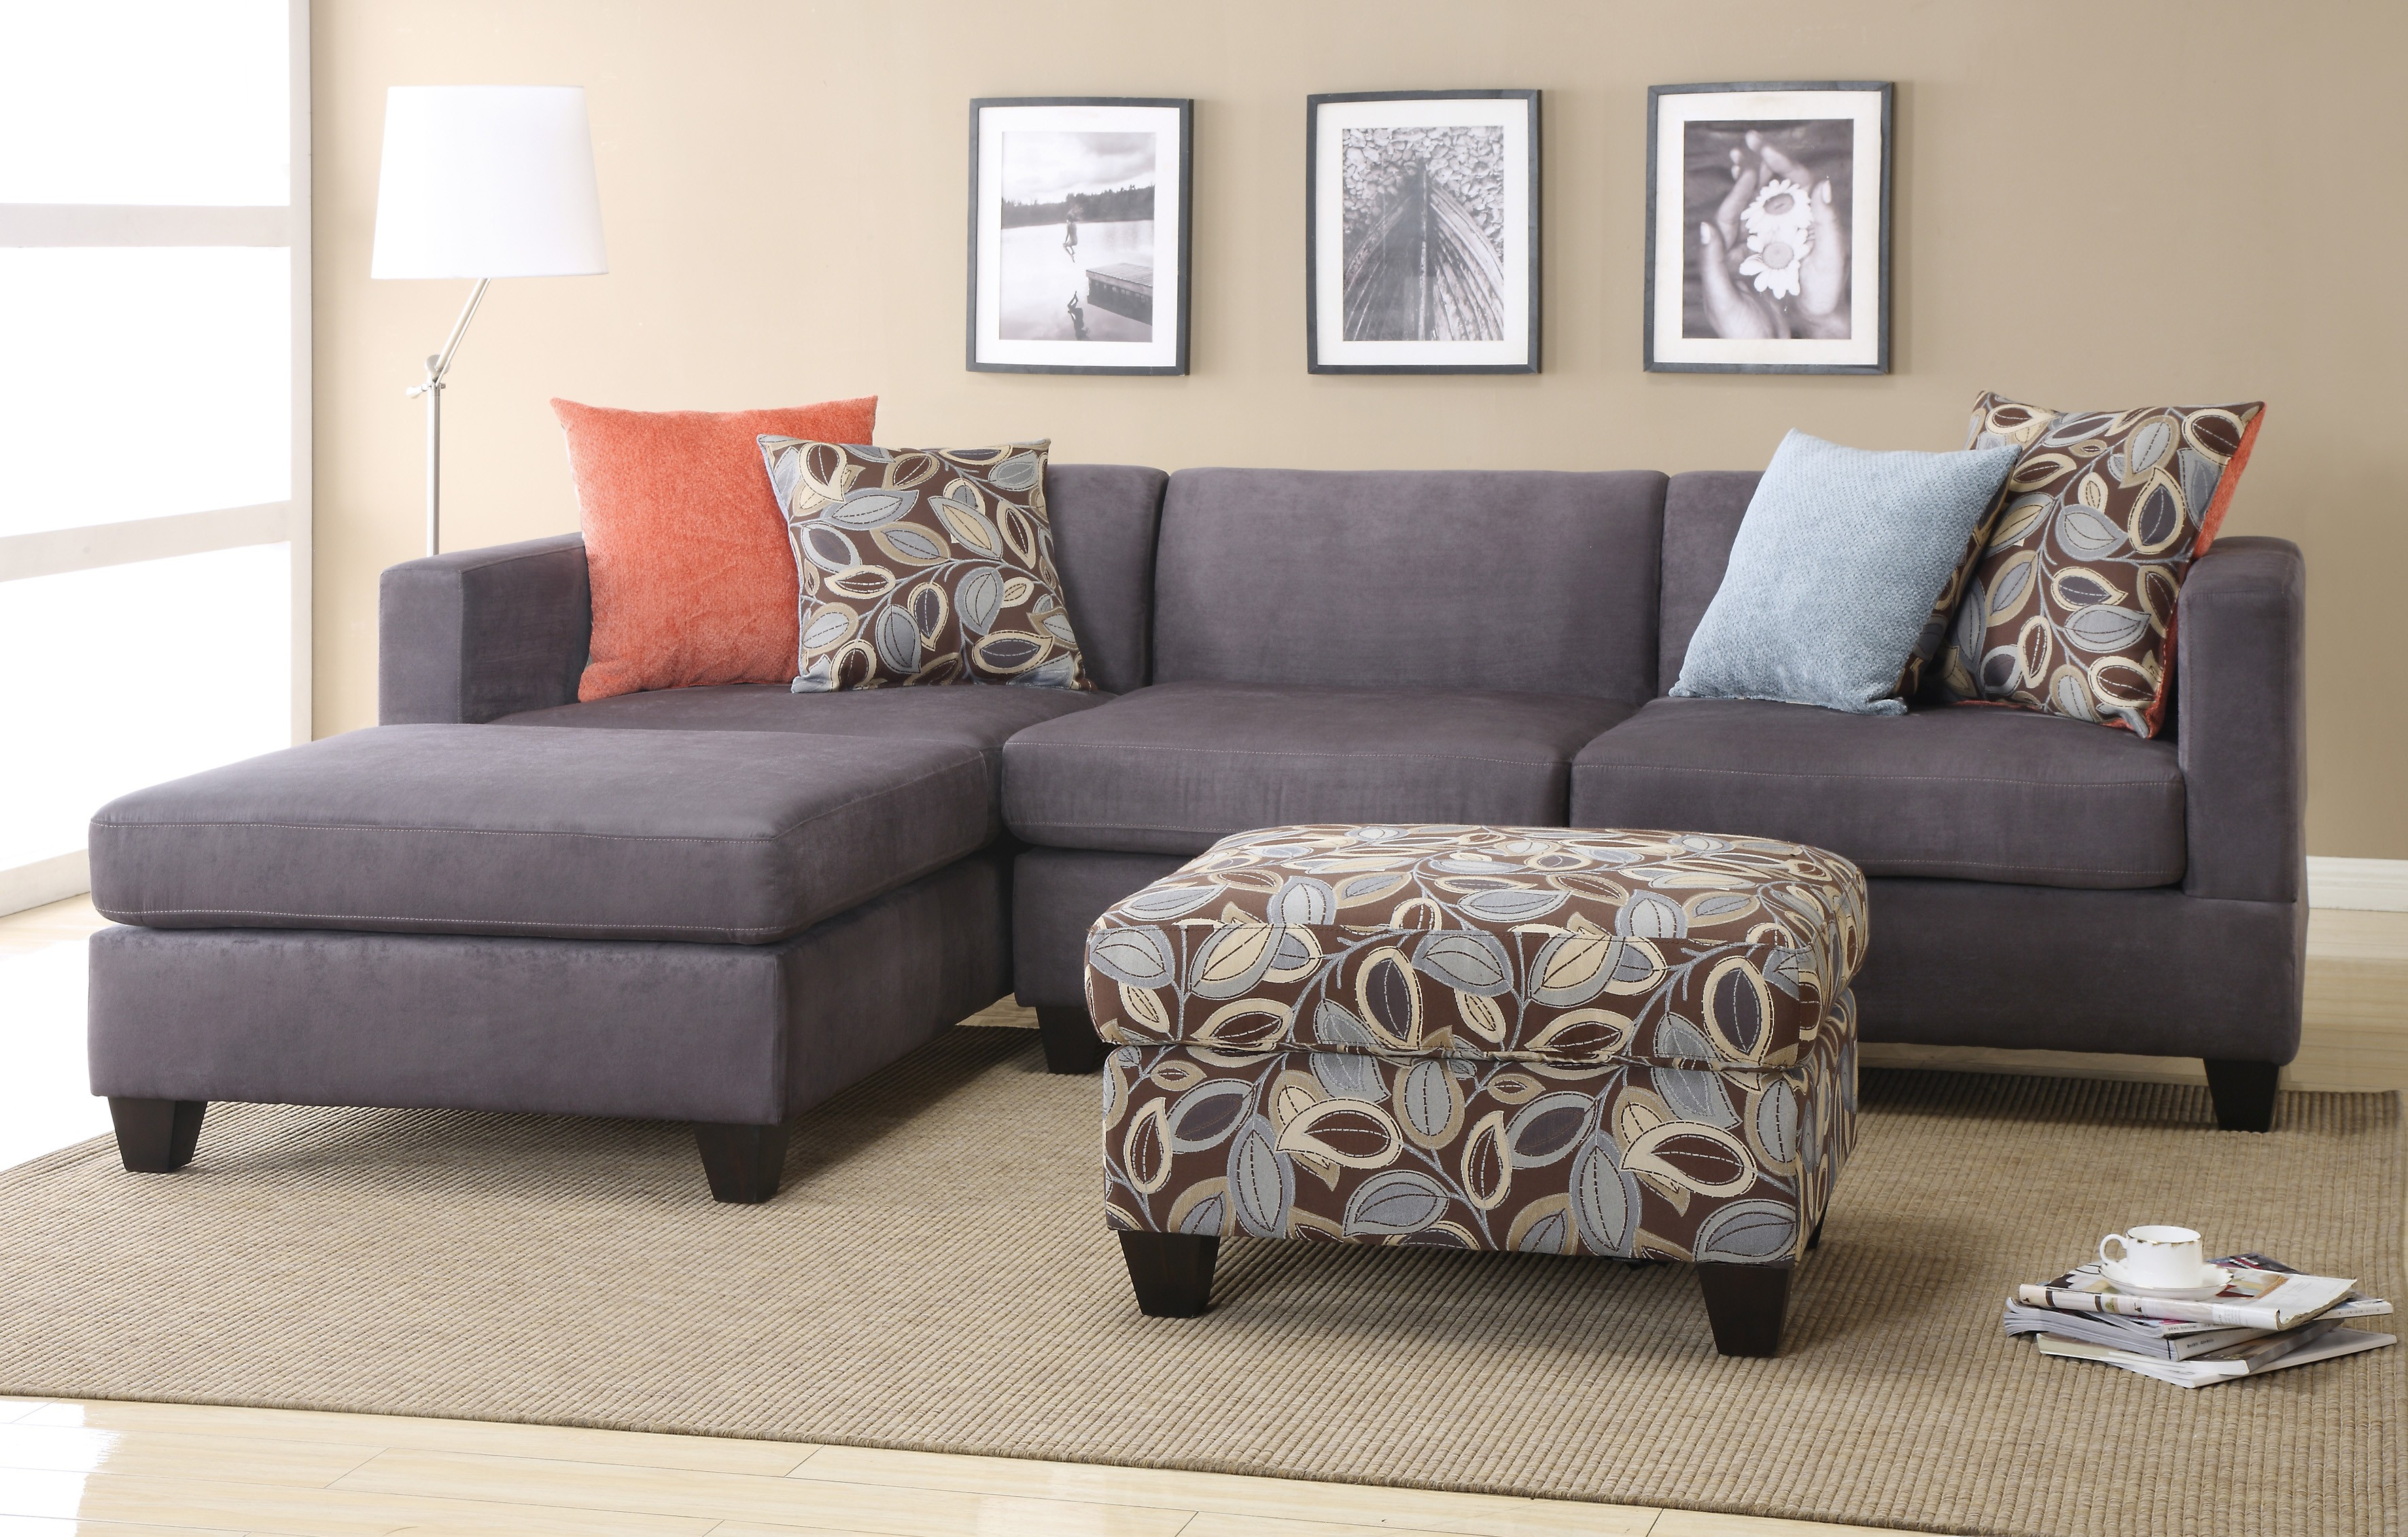 chaise pop giordano grey furniture nader and with couch up product storage unit sofa ottoman s amp suede